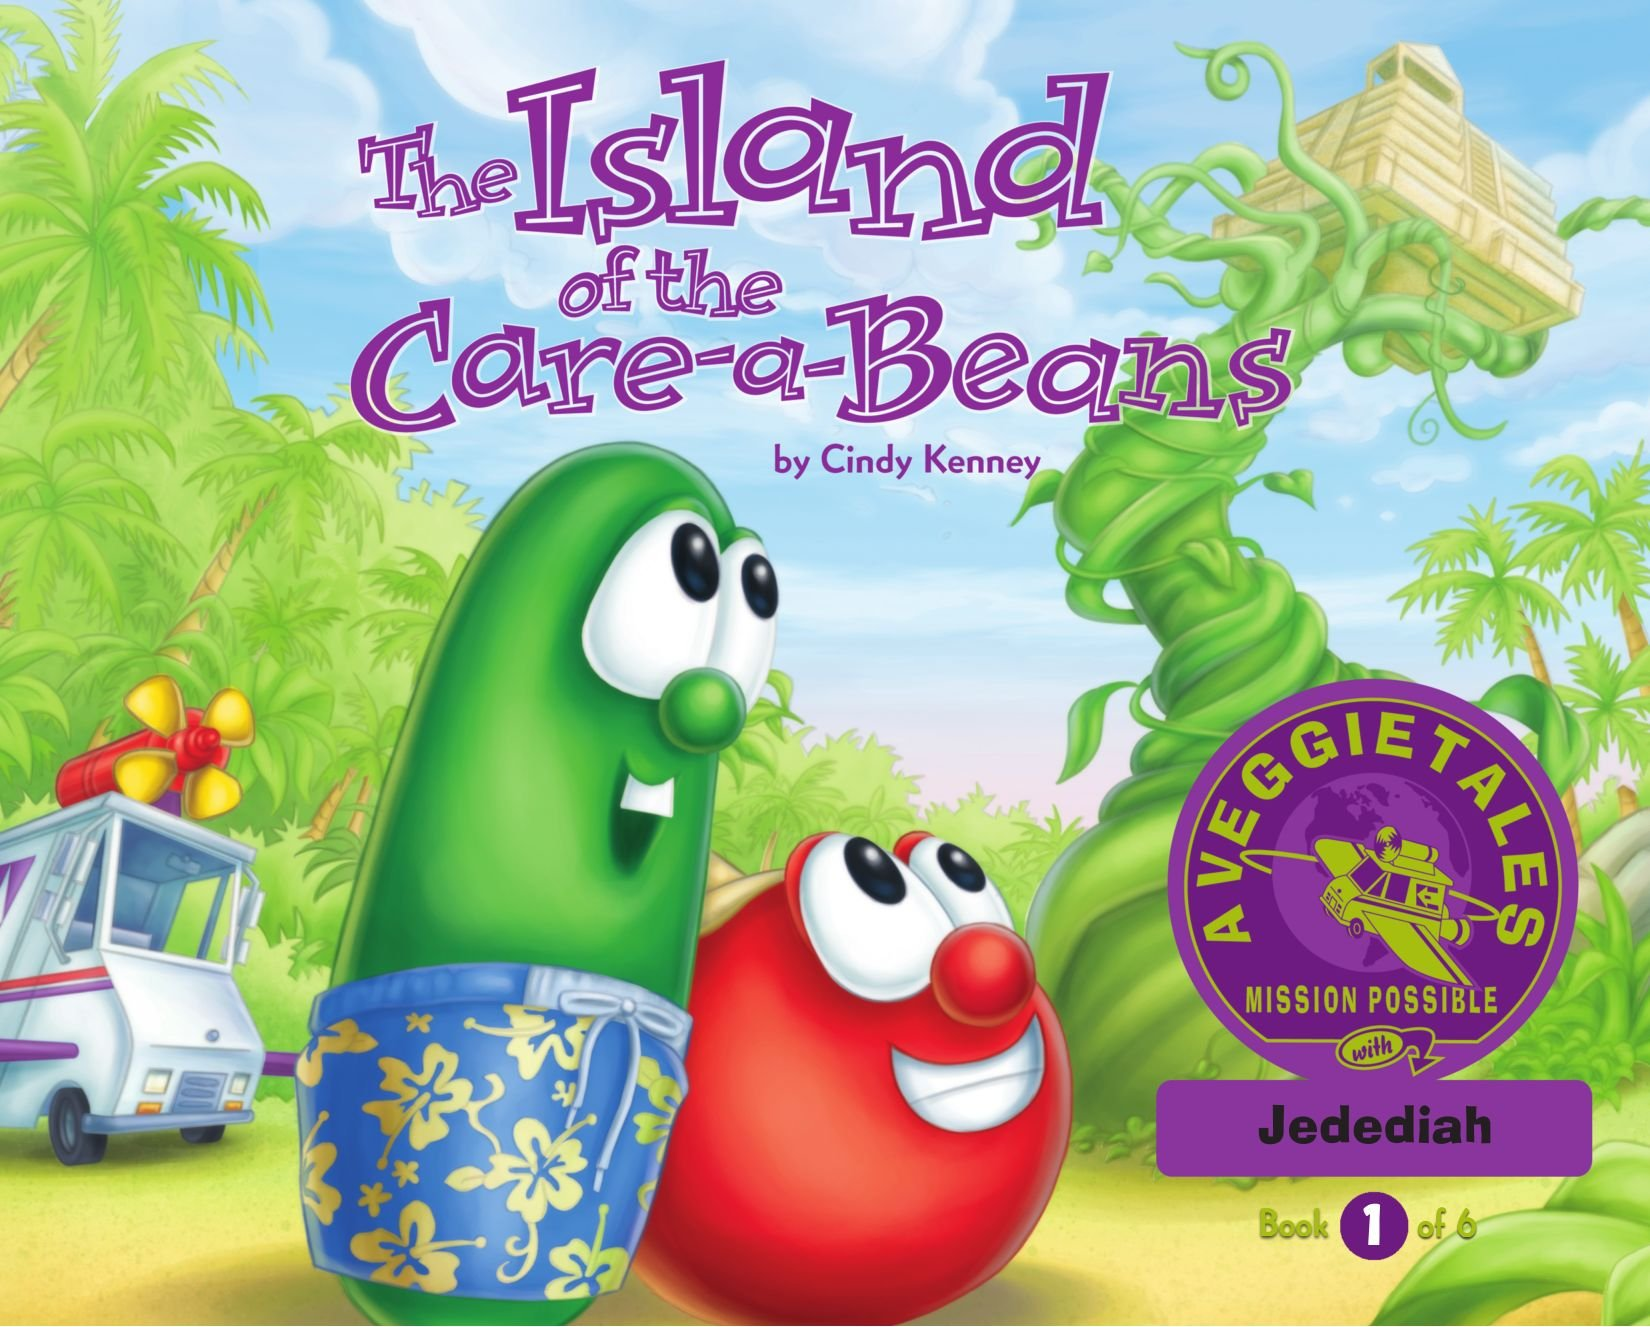 The Island of the Care-a-Beans - VeggieTales Mission Possible Adventure Series #1: Personalized for Jedediah (Boy) ebook